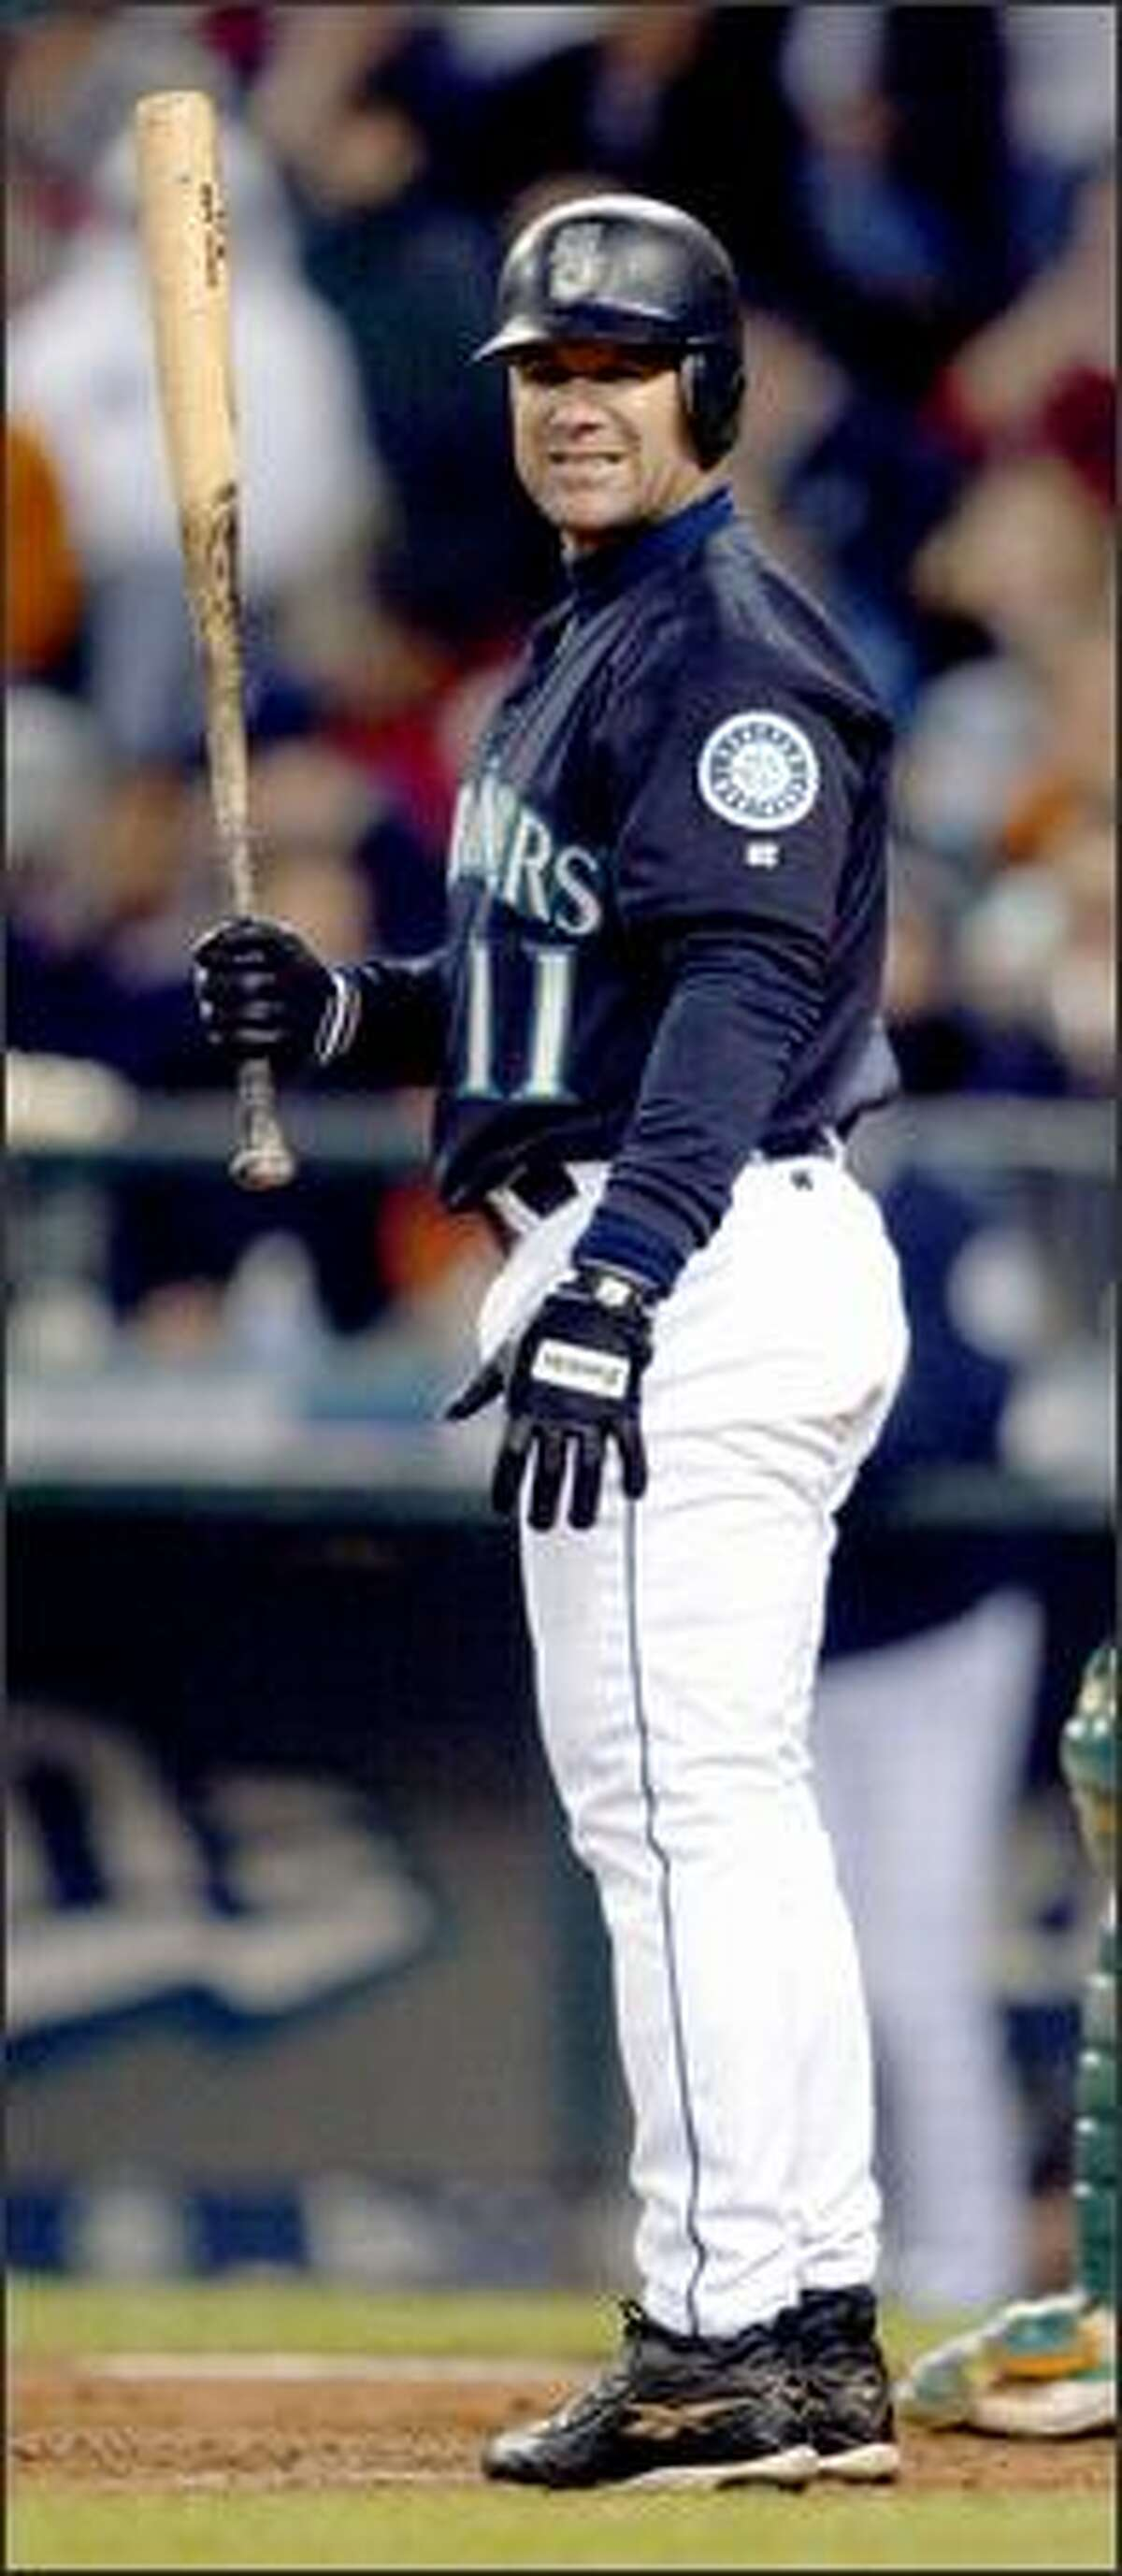 Edgar Martinez, Seattle's 40-year-old designated hitter who has a career batting average of .314, is hitting .275.